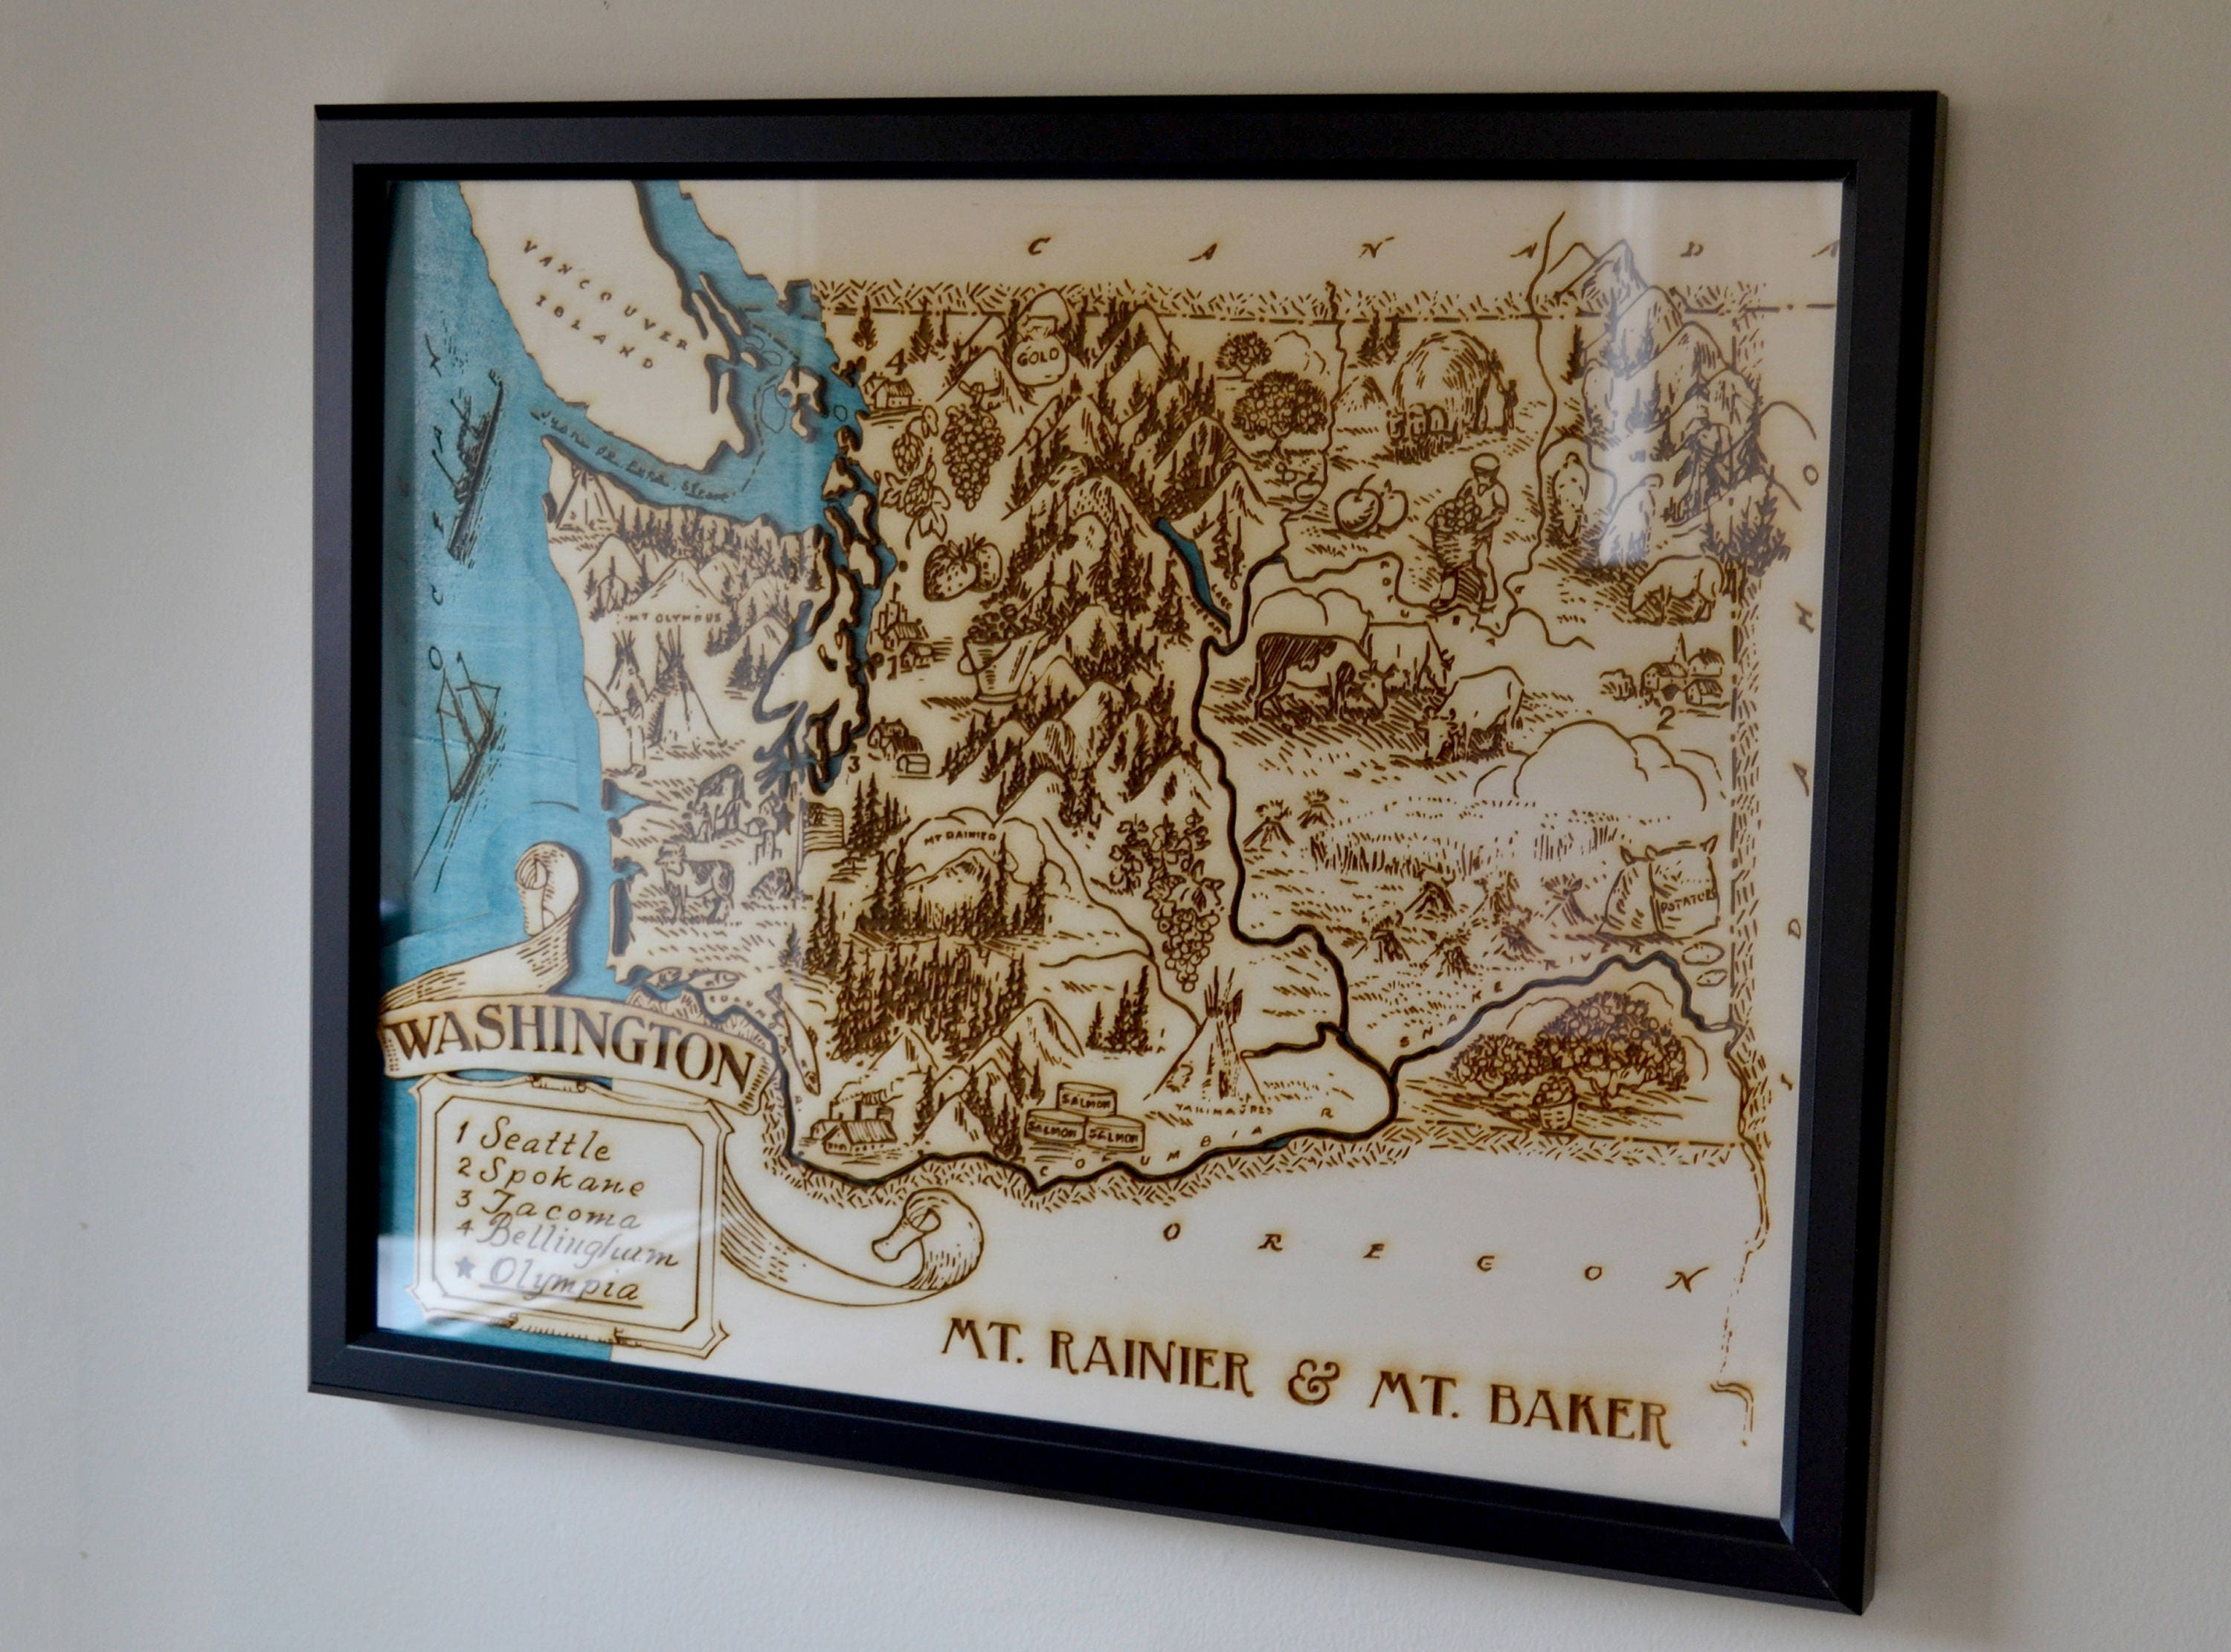 Personalised map wedding gifts washington topographic wood map personalised map wedding gifts washington topographic wood map chart travel wedding gift map gumiabroncs Choice Image